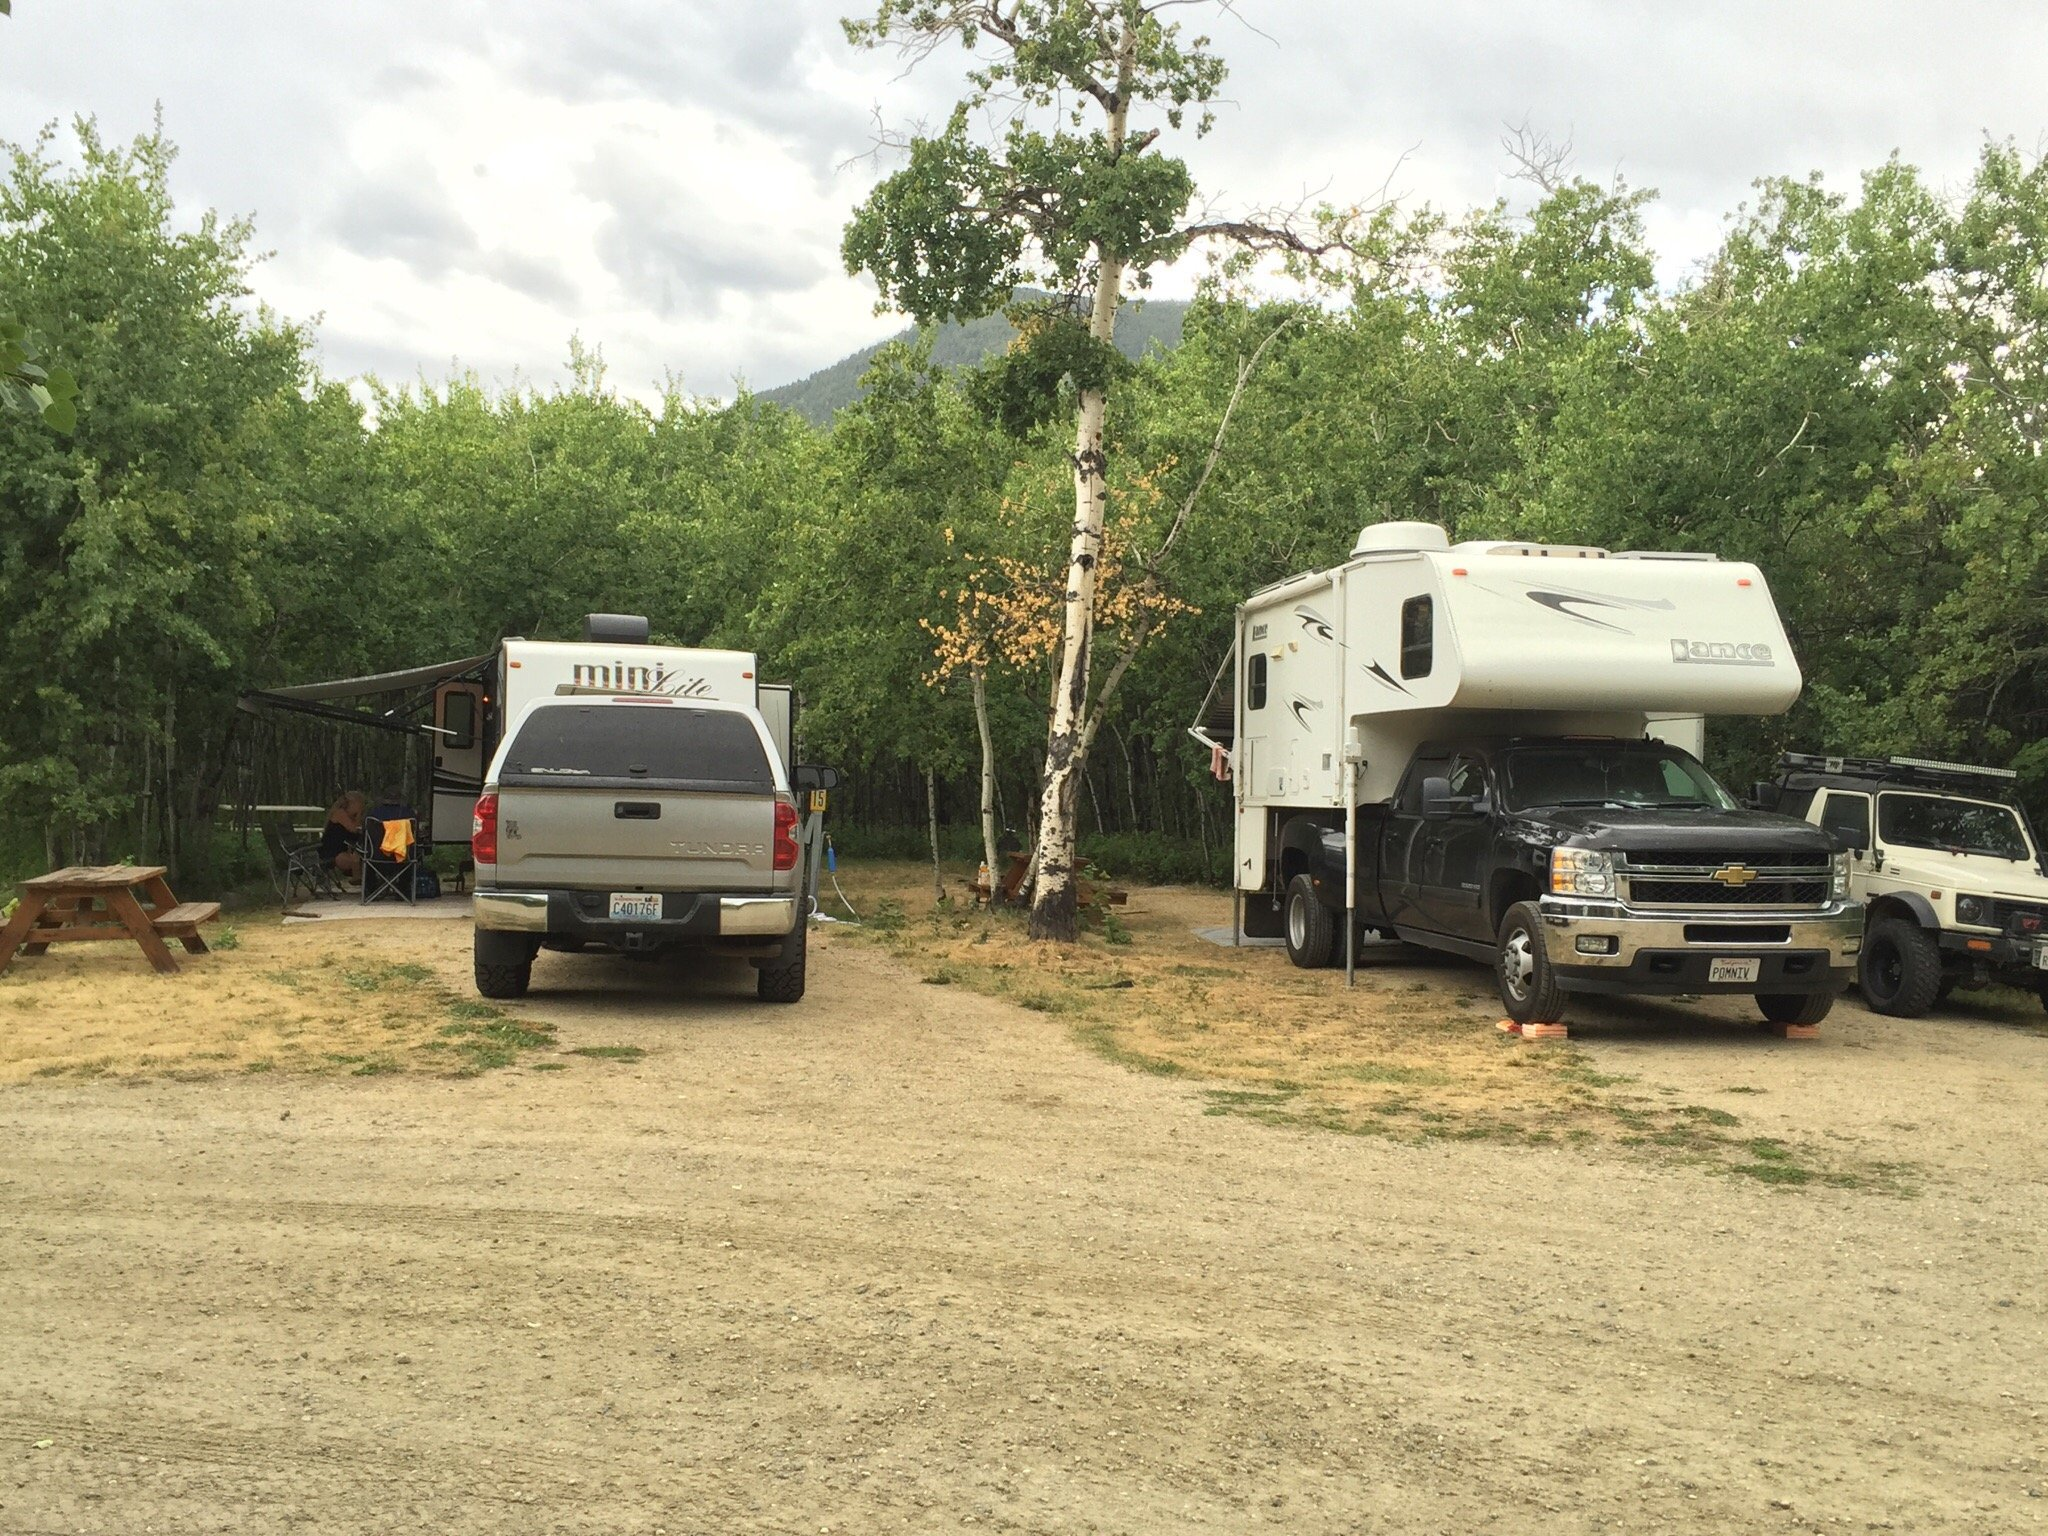 Perry's RV Park and Campground